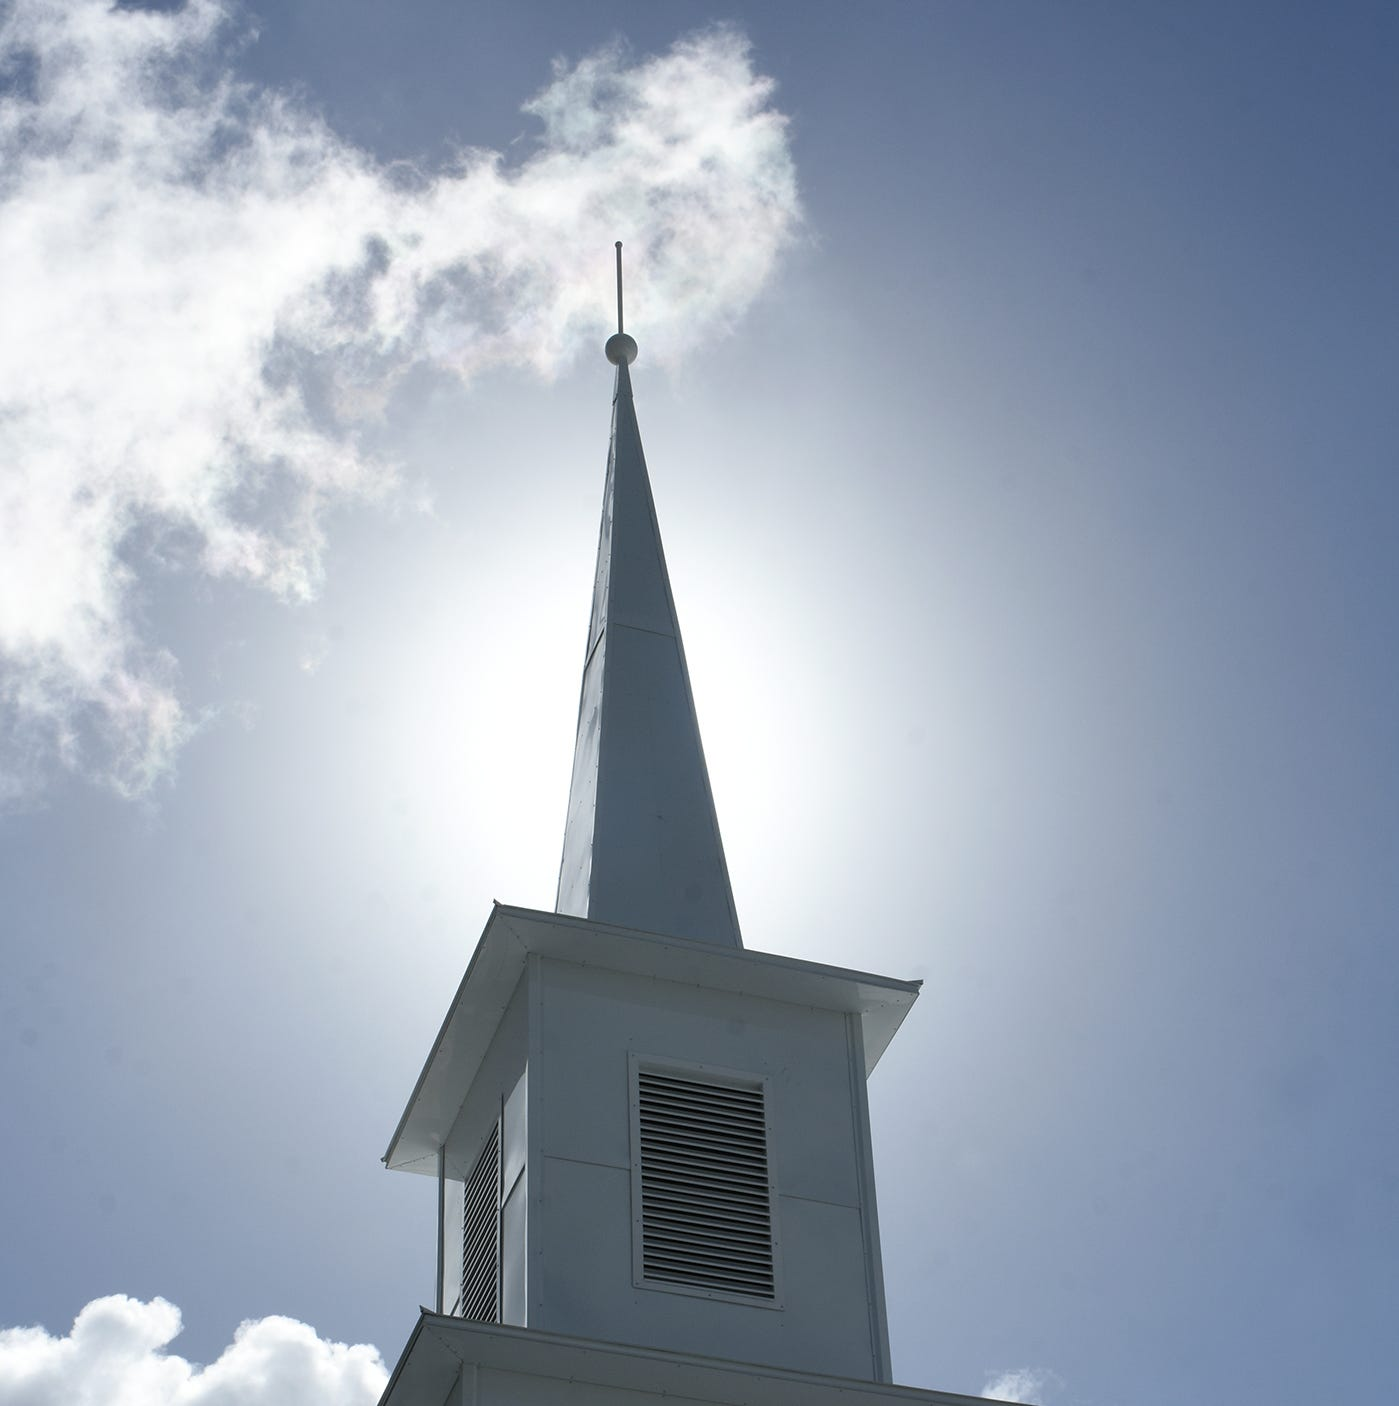 Lofty ambitions:United Church of Marco Island replaces steeple blown over by Irma